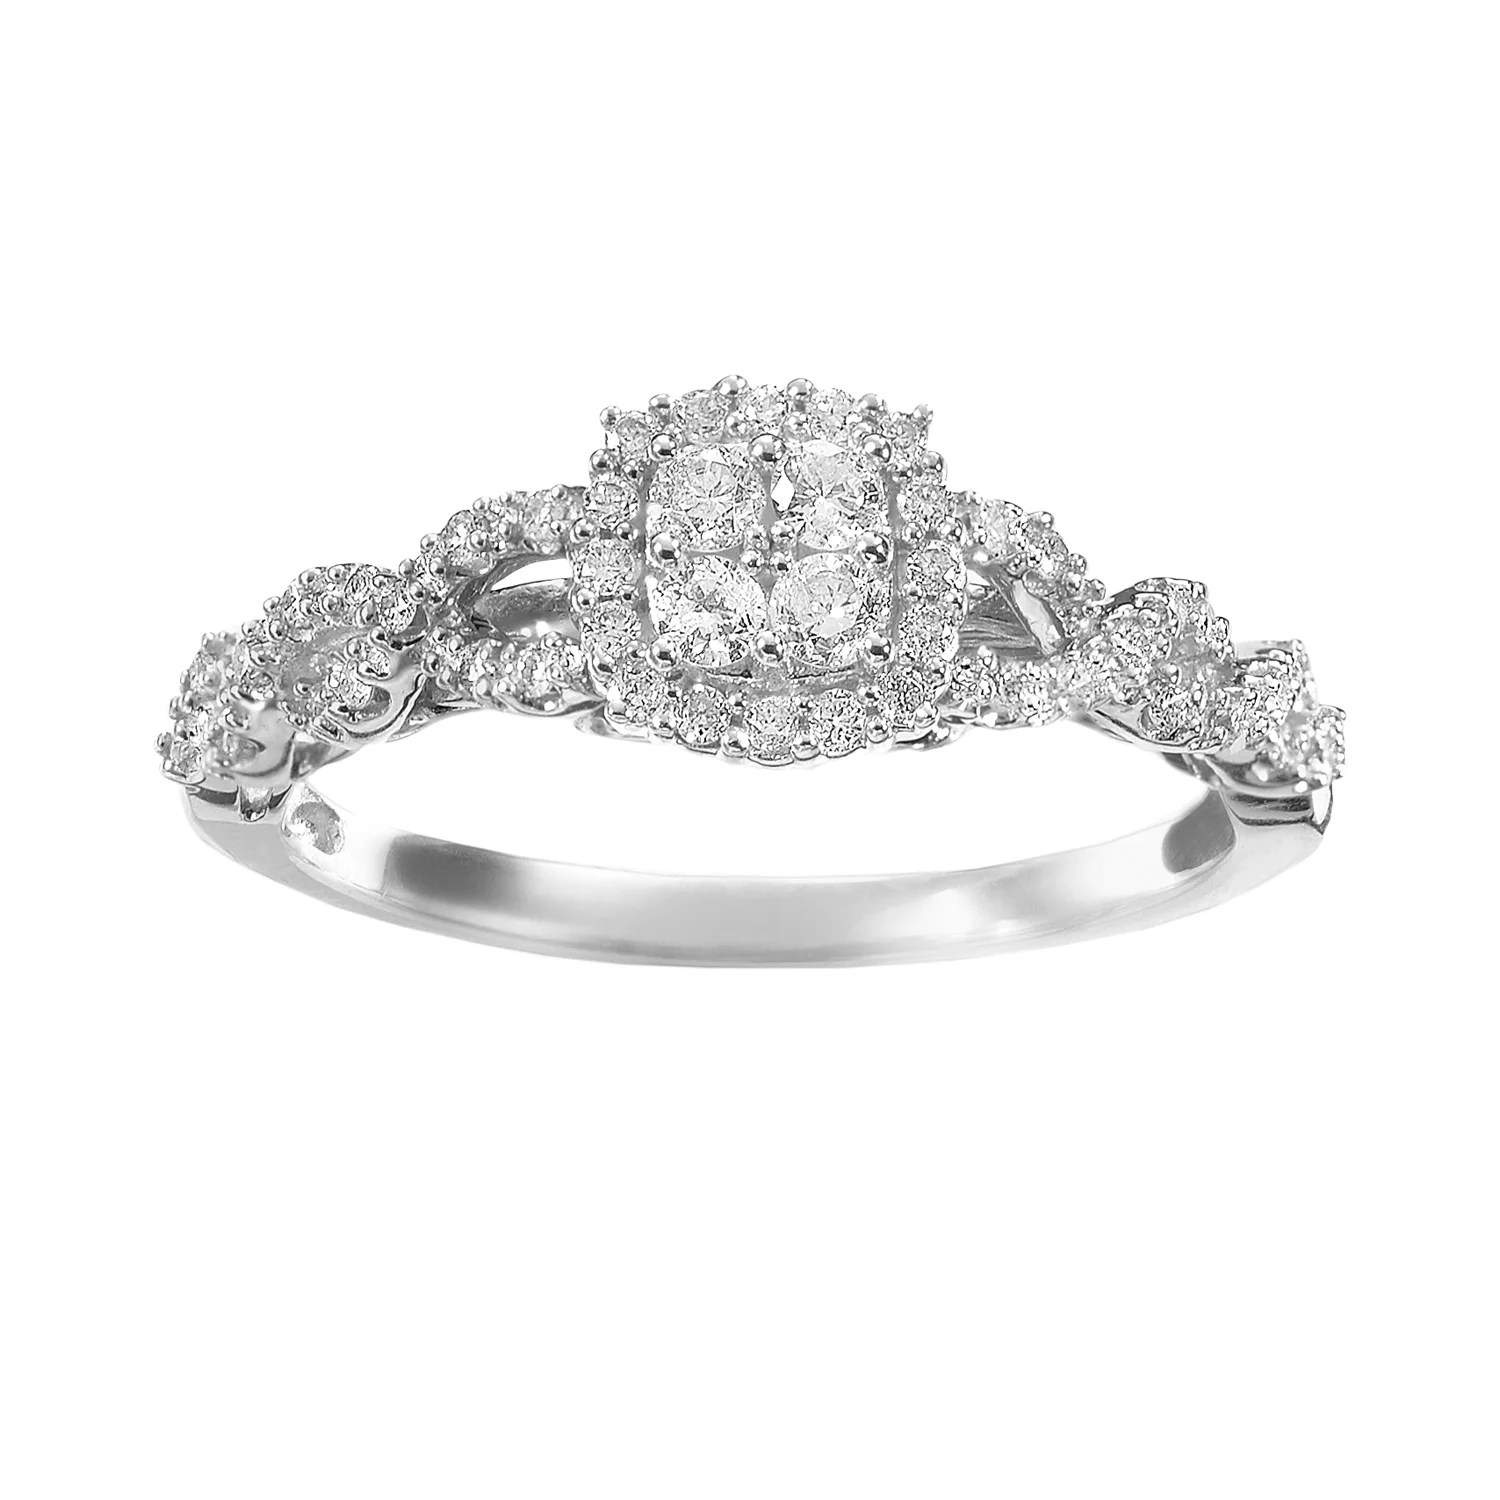 simply vera vera wang diamond twist frame engagement ring in 14k white gold 13 ct tw kohl's wedding rings Simply Vera Vera Wang Diamond Twist Frame Engagement Ring in 14k White Gold 1 3 ct T W